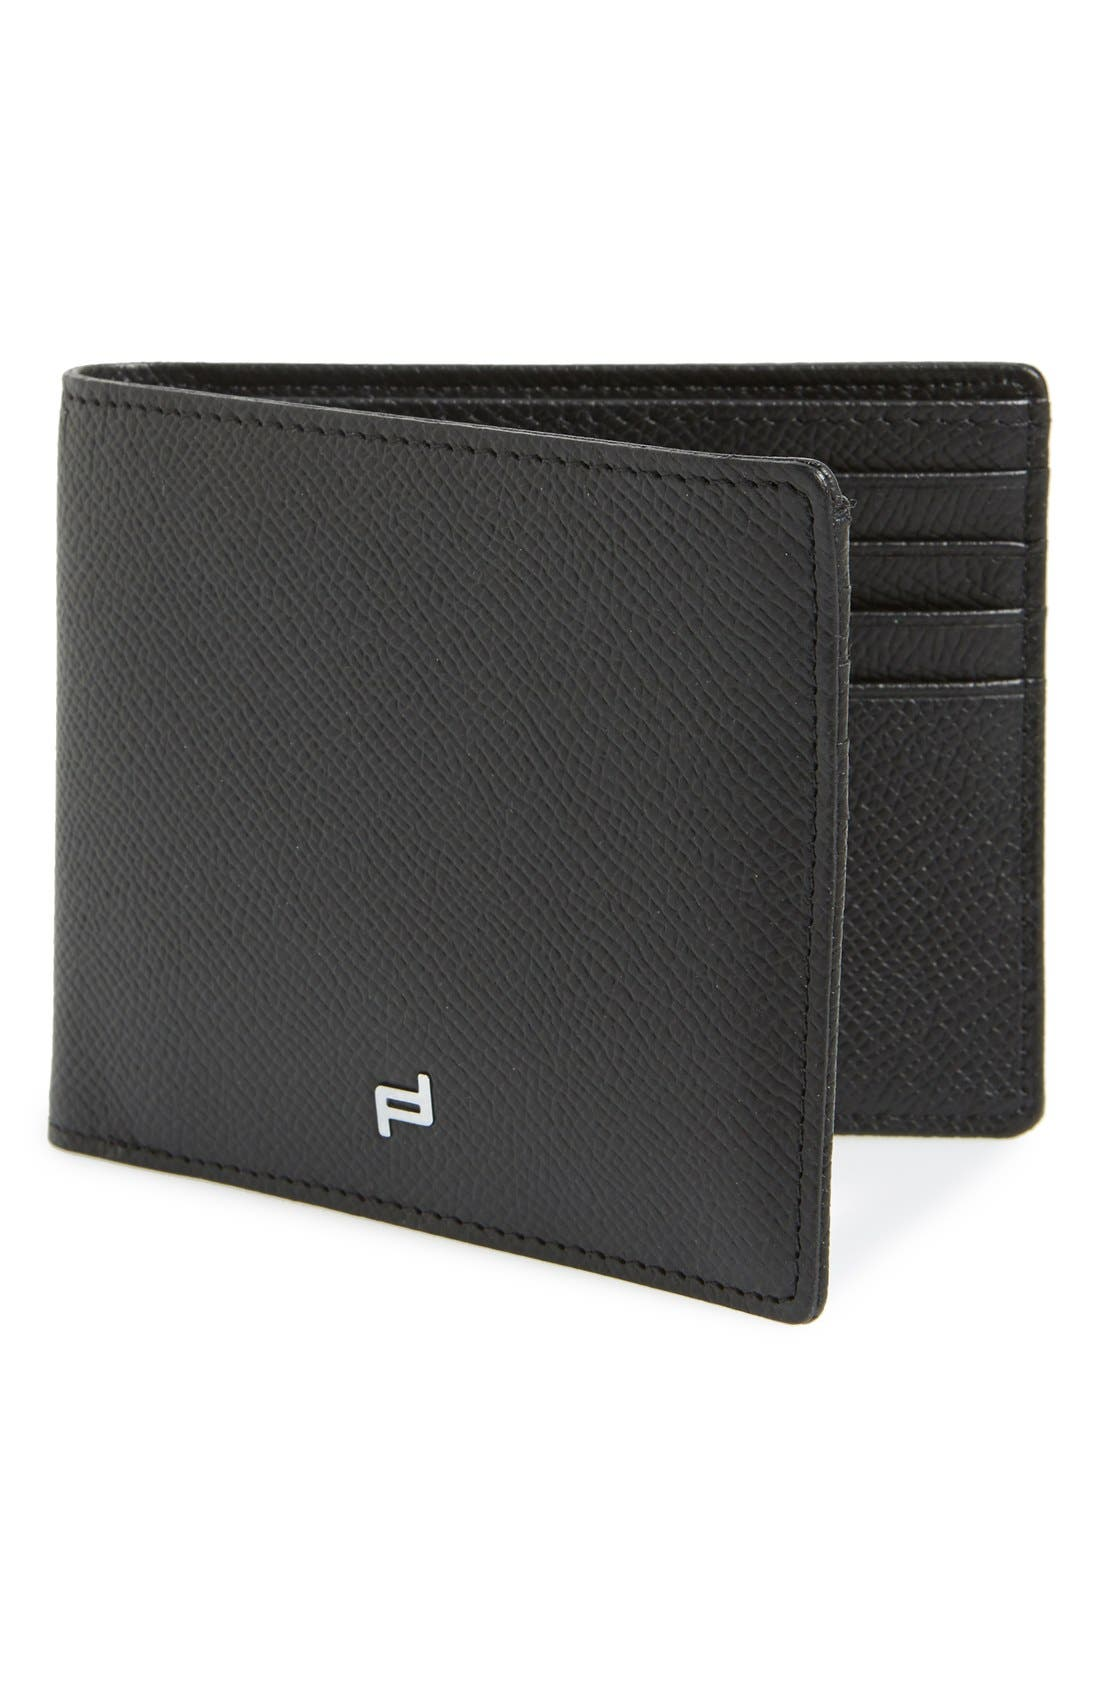 PORSCHE DESIGN FC 3.0 Leather Bifold Wallet